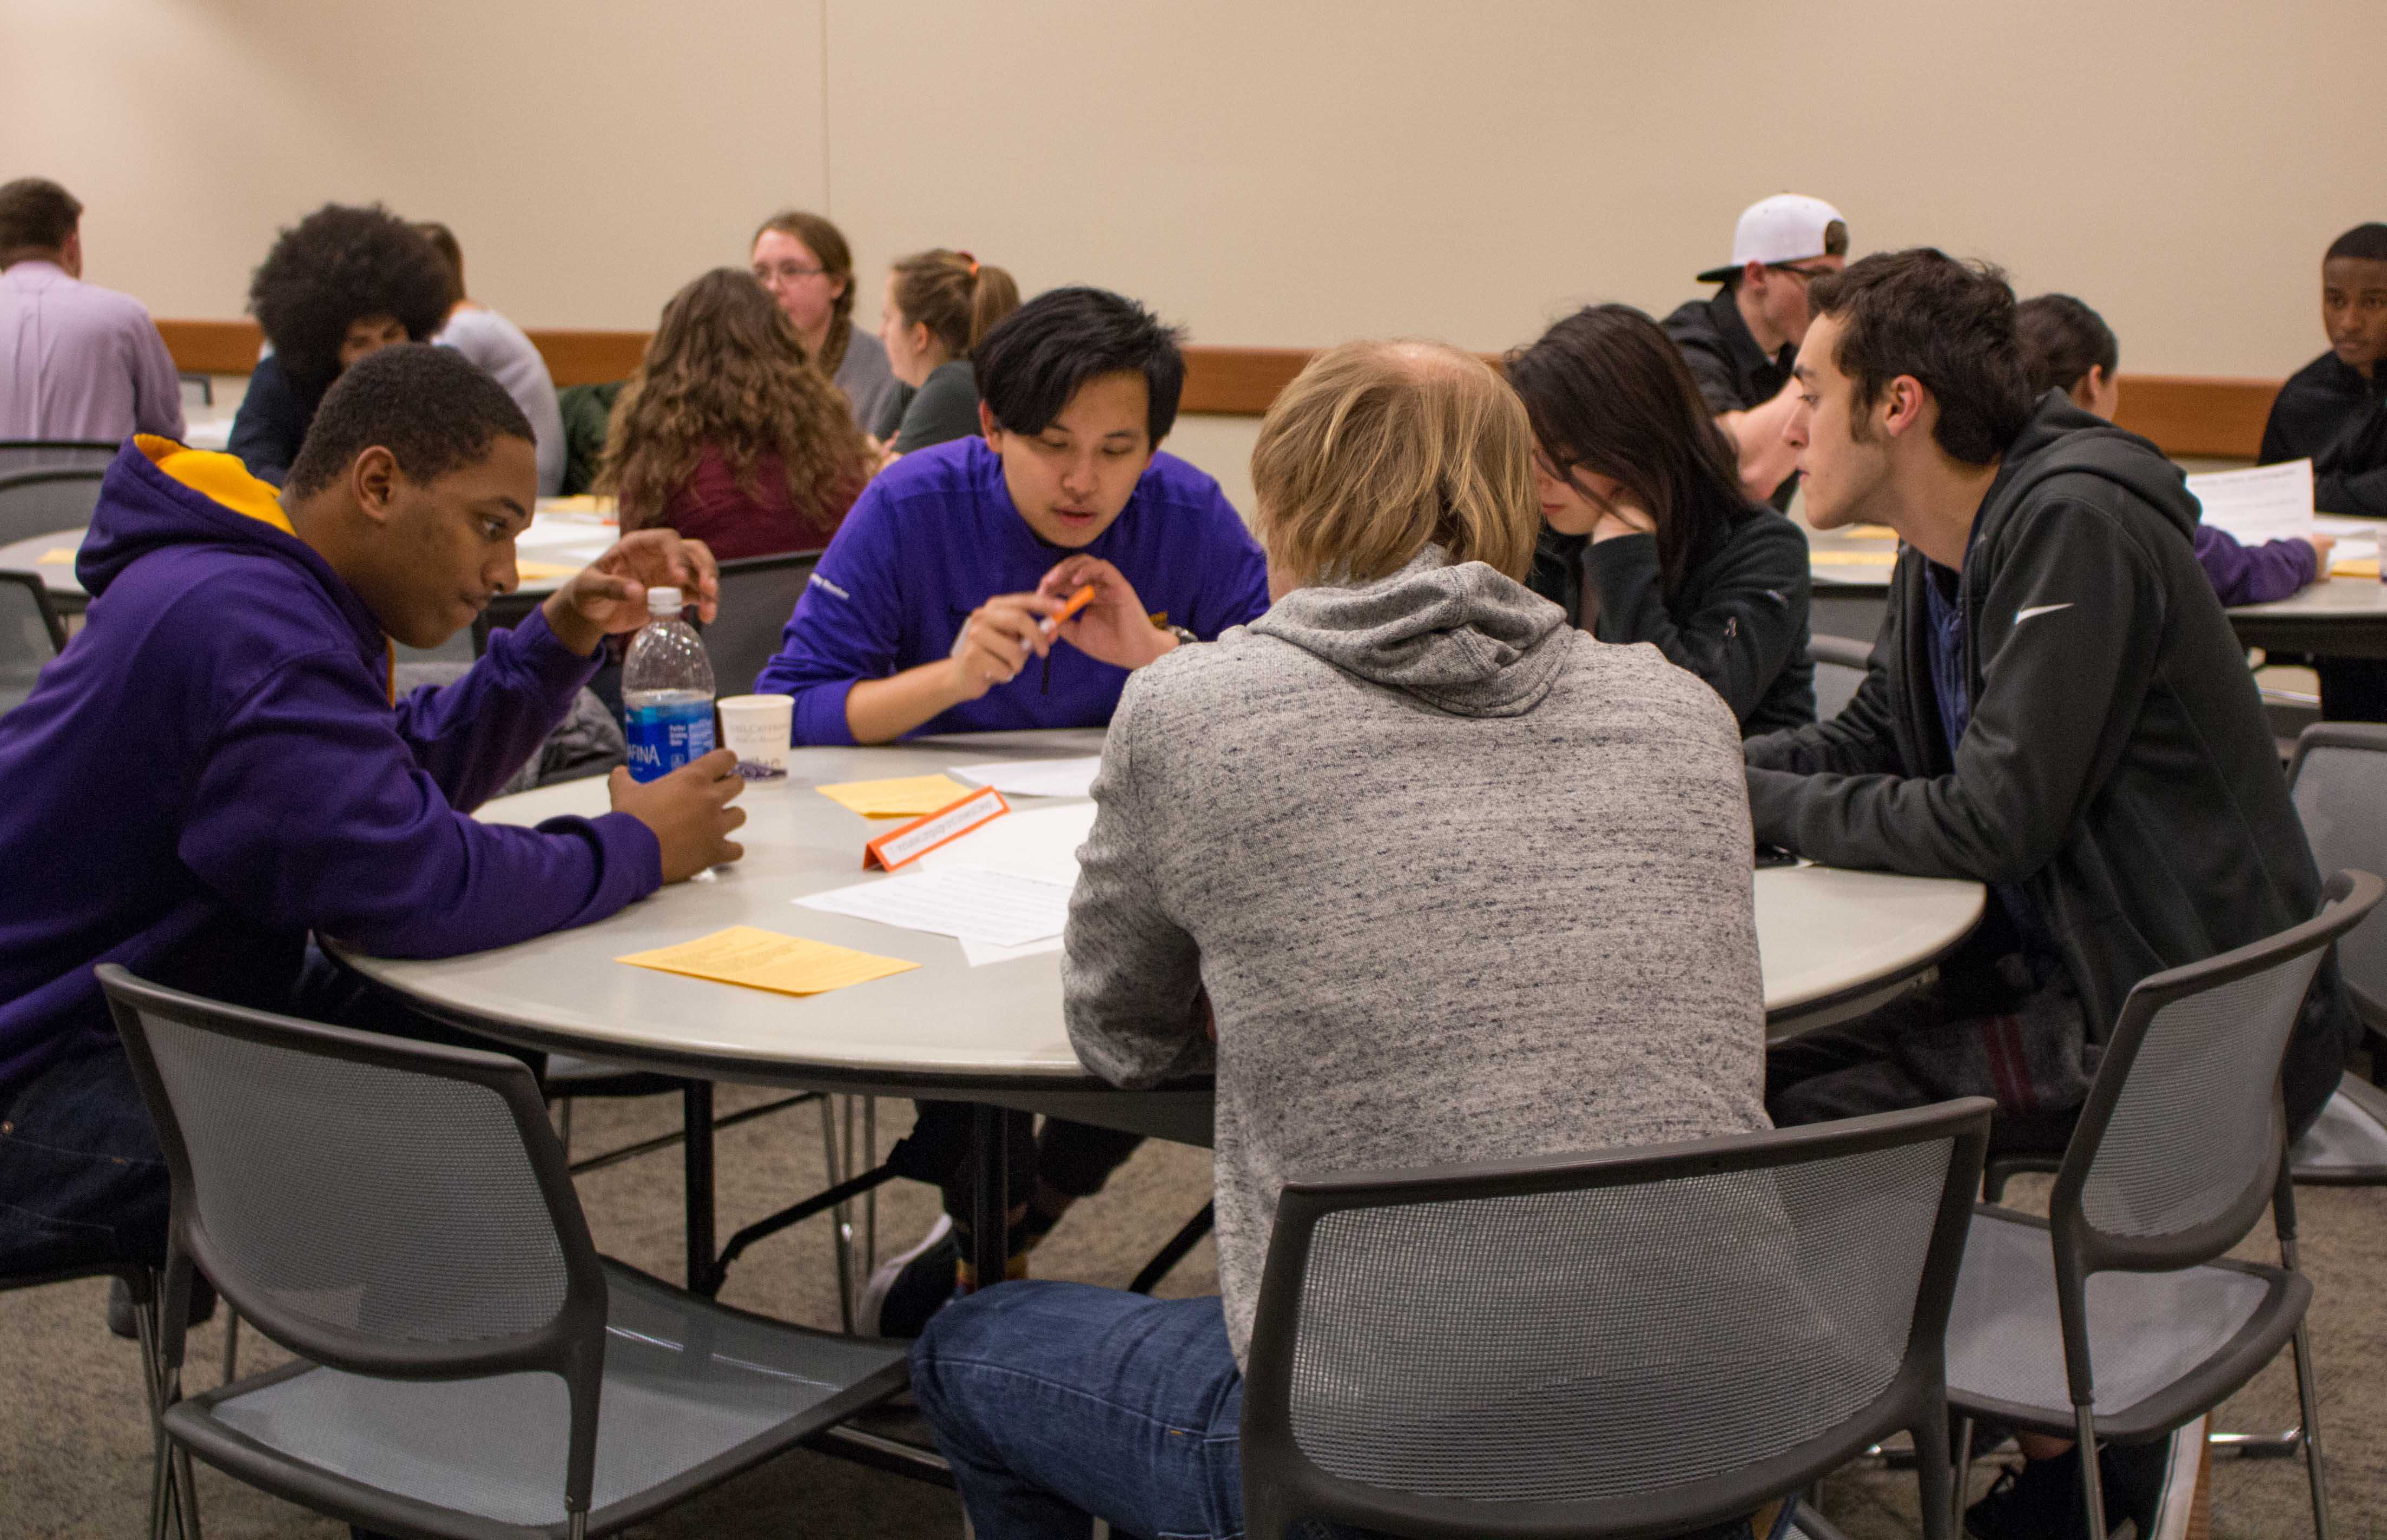 The Department of Residence (DOR) hosted World Cafe on Monday night, where students engaged in discussion on controversial topics.